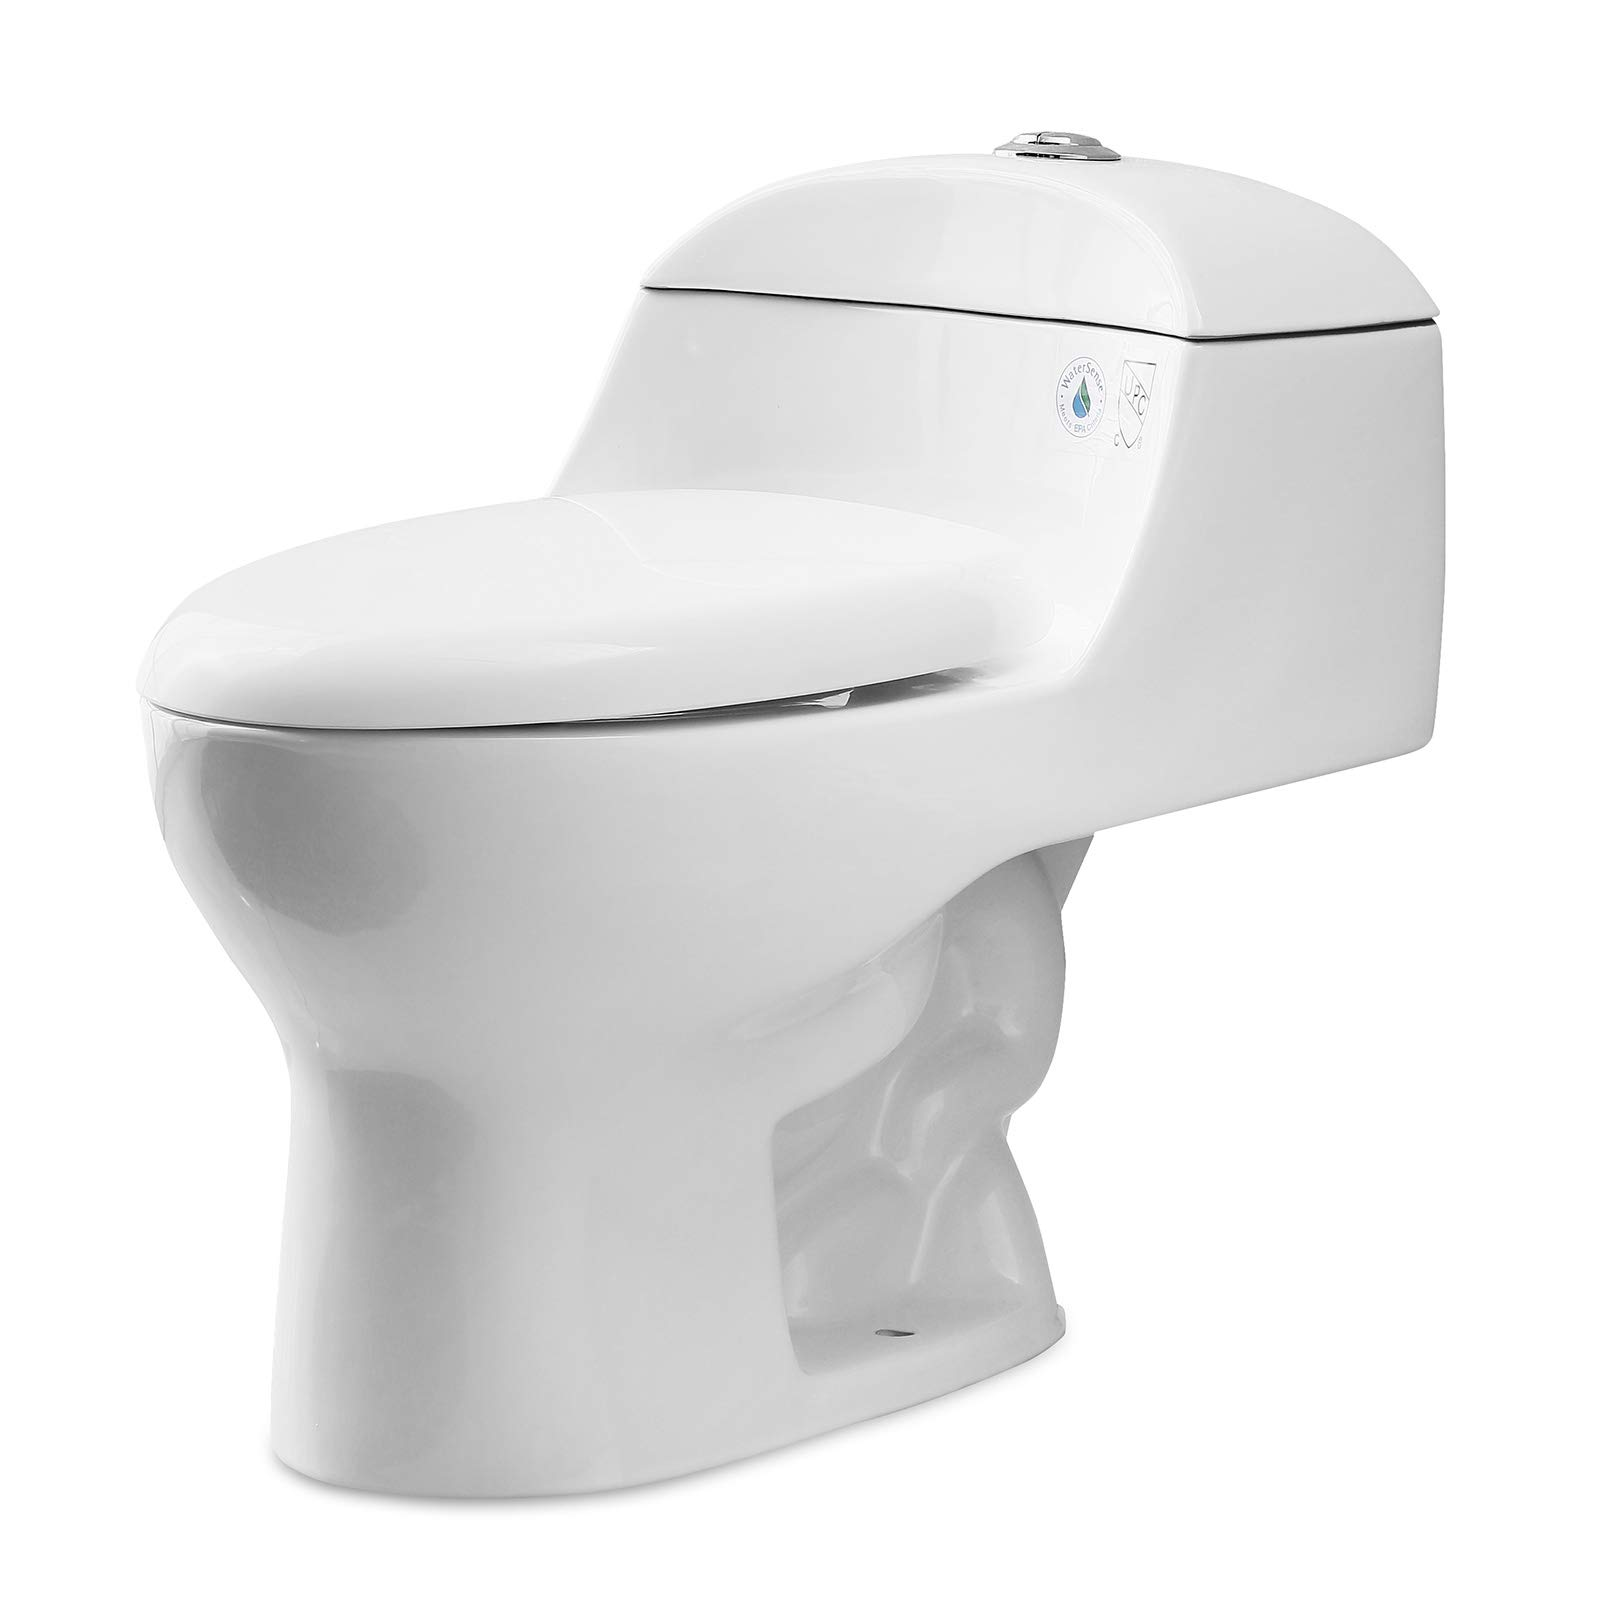 Mecor Elongated One-Piece Toilet Siphon Dual Flushing,Soft Closing Quick Release Seat 0.8/1.28Gpf,Cotton White. (27.5''X 16.1''X 24.4'') by mecor